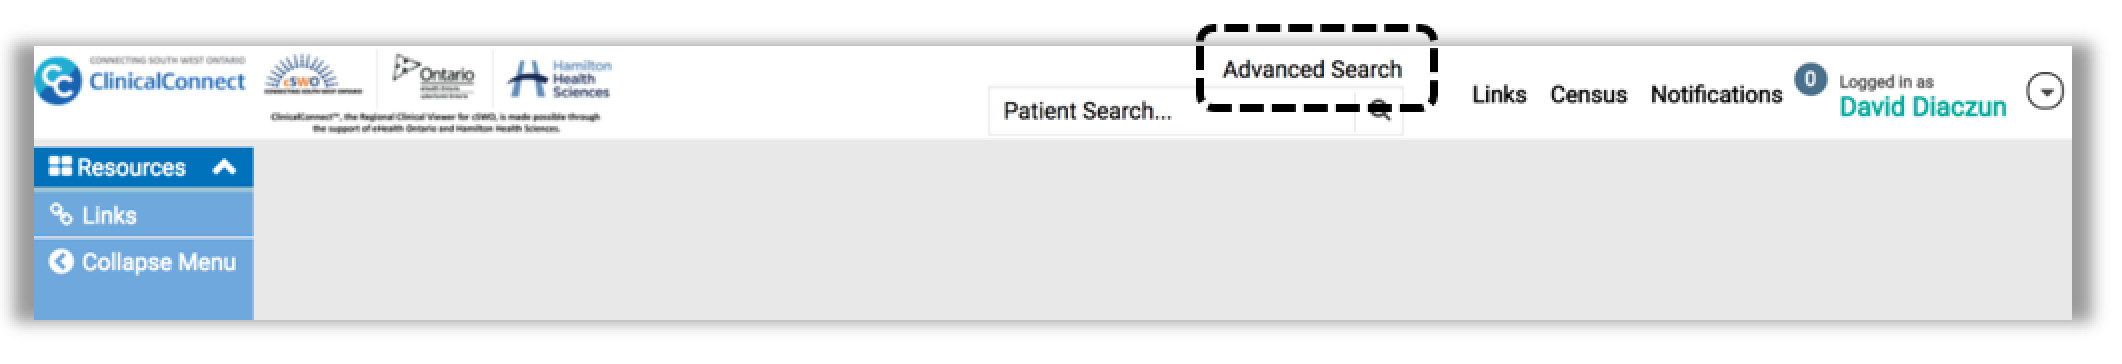 Image showing where the advanced search option is located in the toolbar